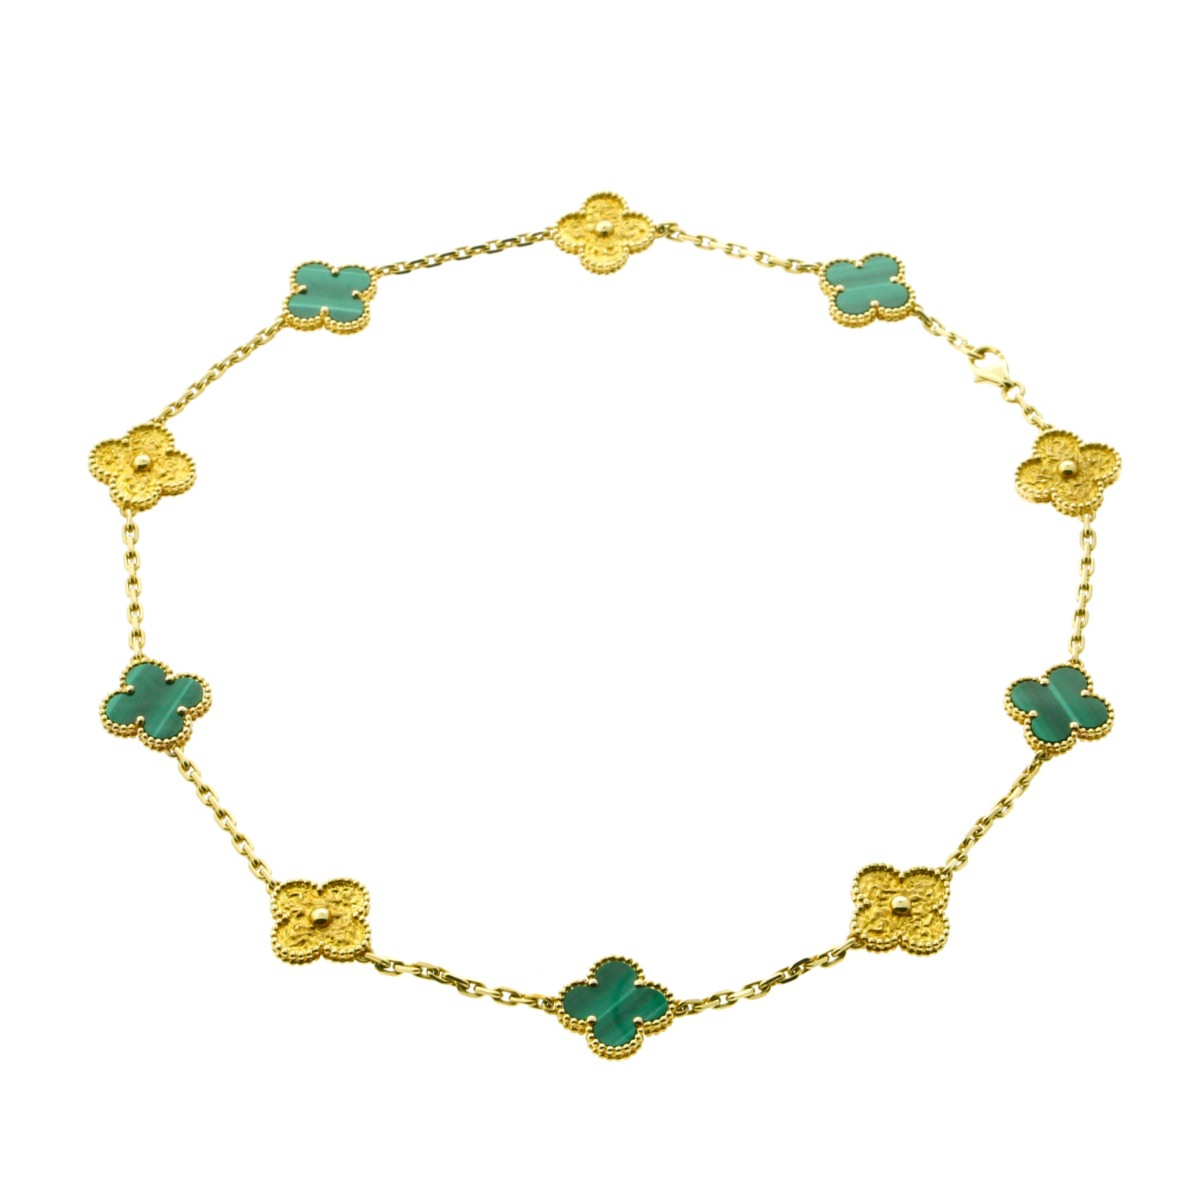 Van Cleef Arpels Limited Edition Malachite Vintage Alhambra Necklace - Van Cleef and Arpels Jewelry